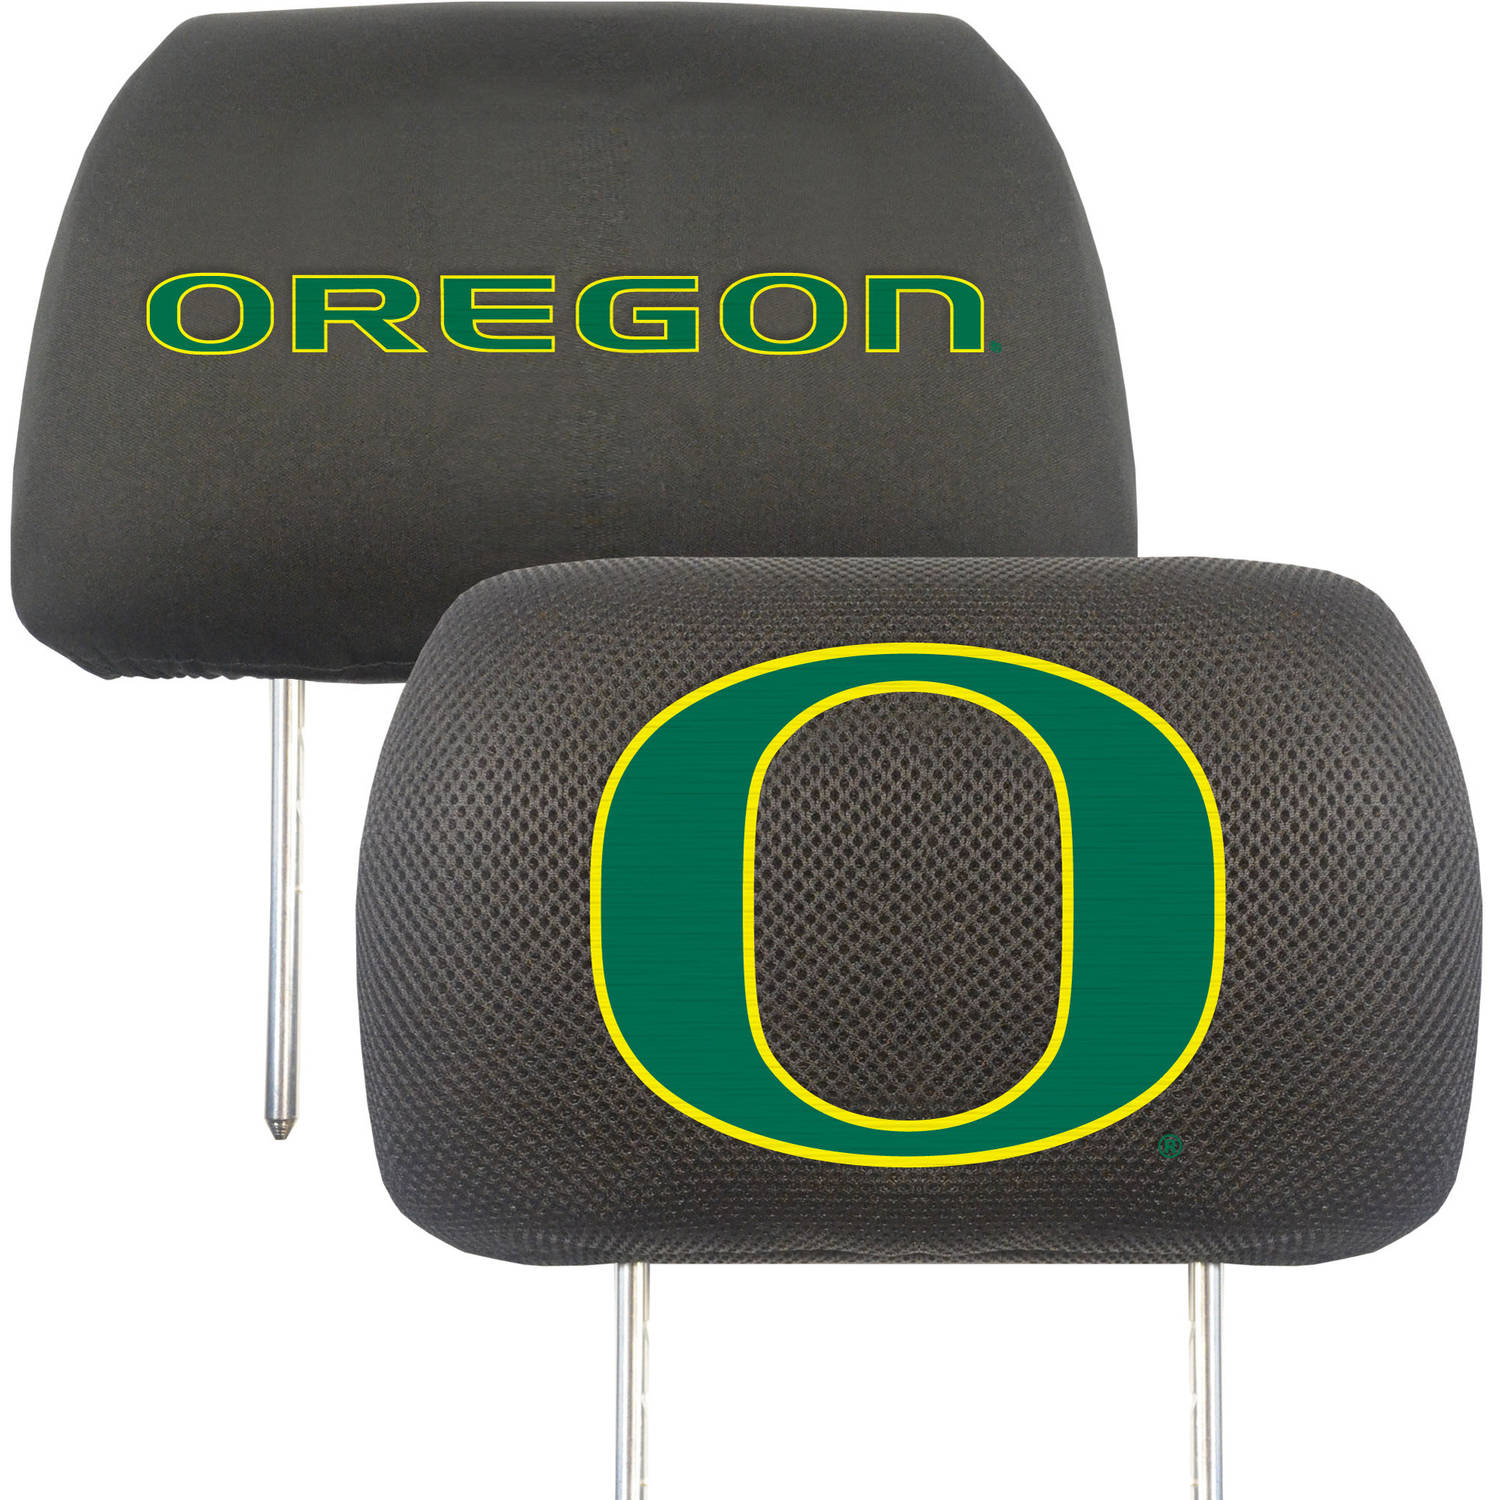 University of Oregon Headrest Covers